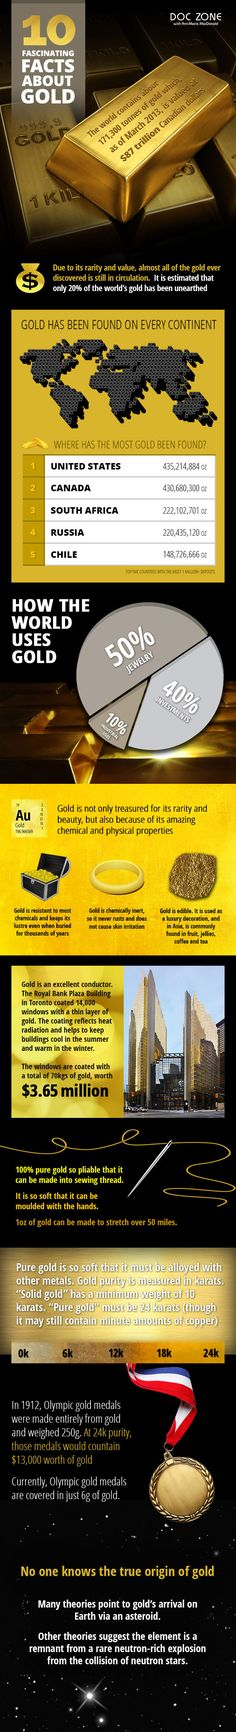 The Secret World of Gold: Ten Facts About Gold - Doc Zone